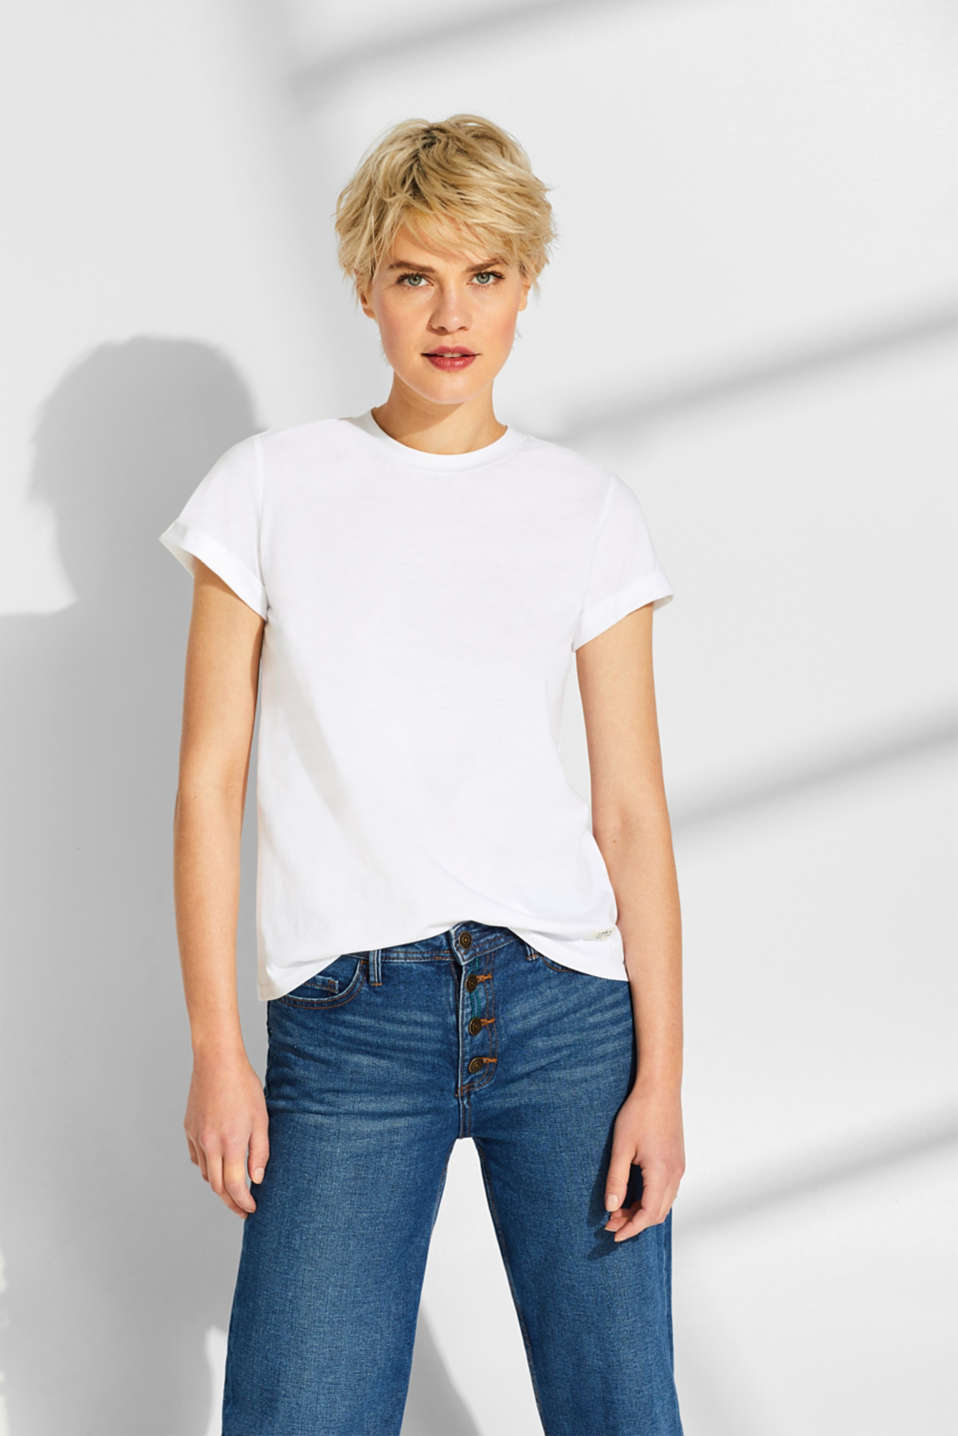 edc - T-shirt in basic look, 100% katoen